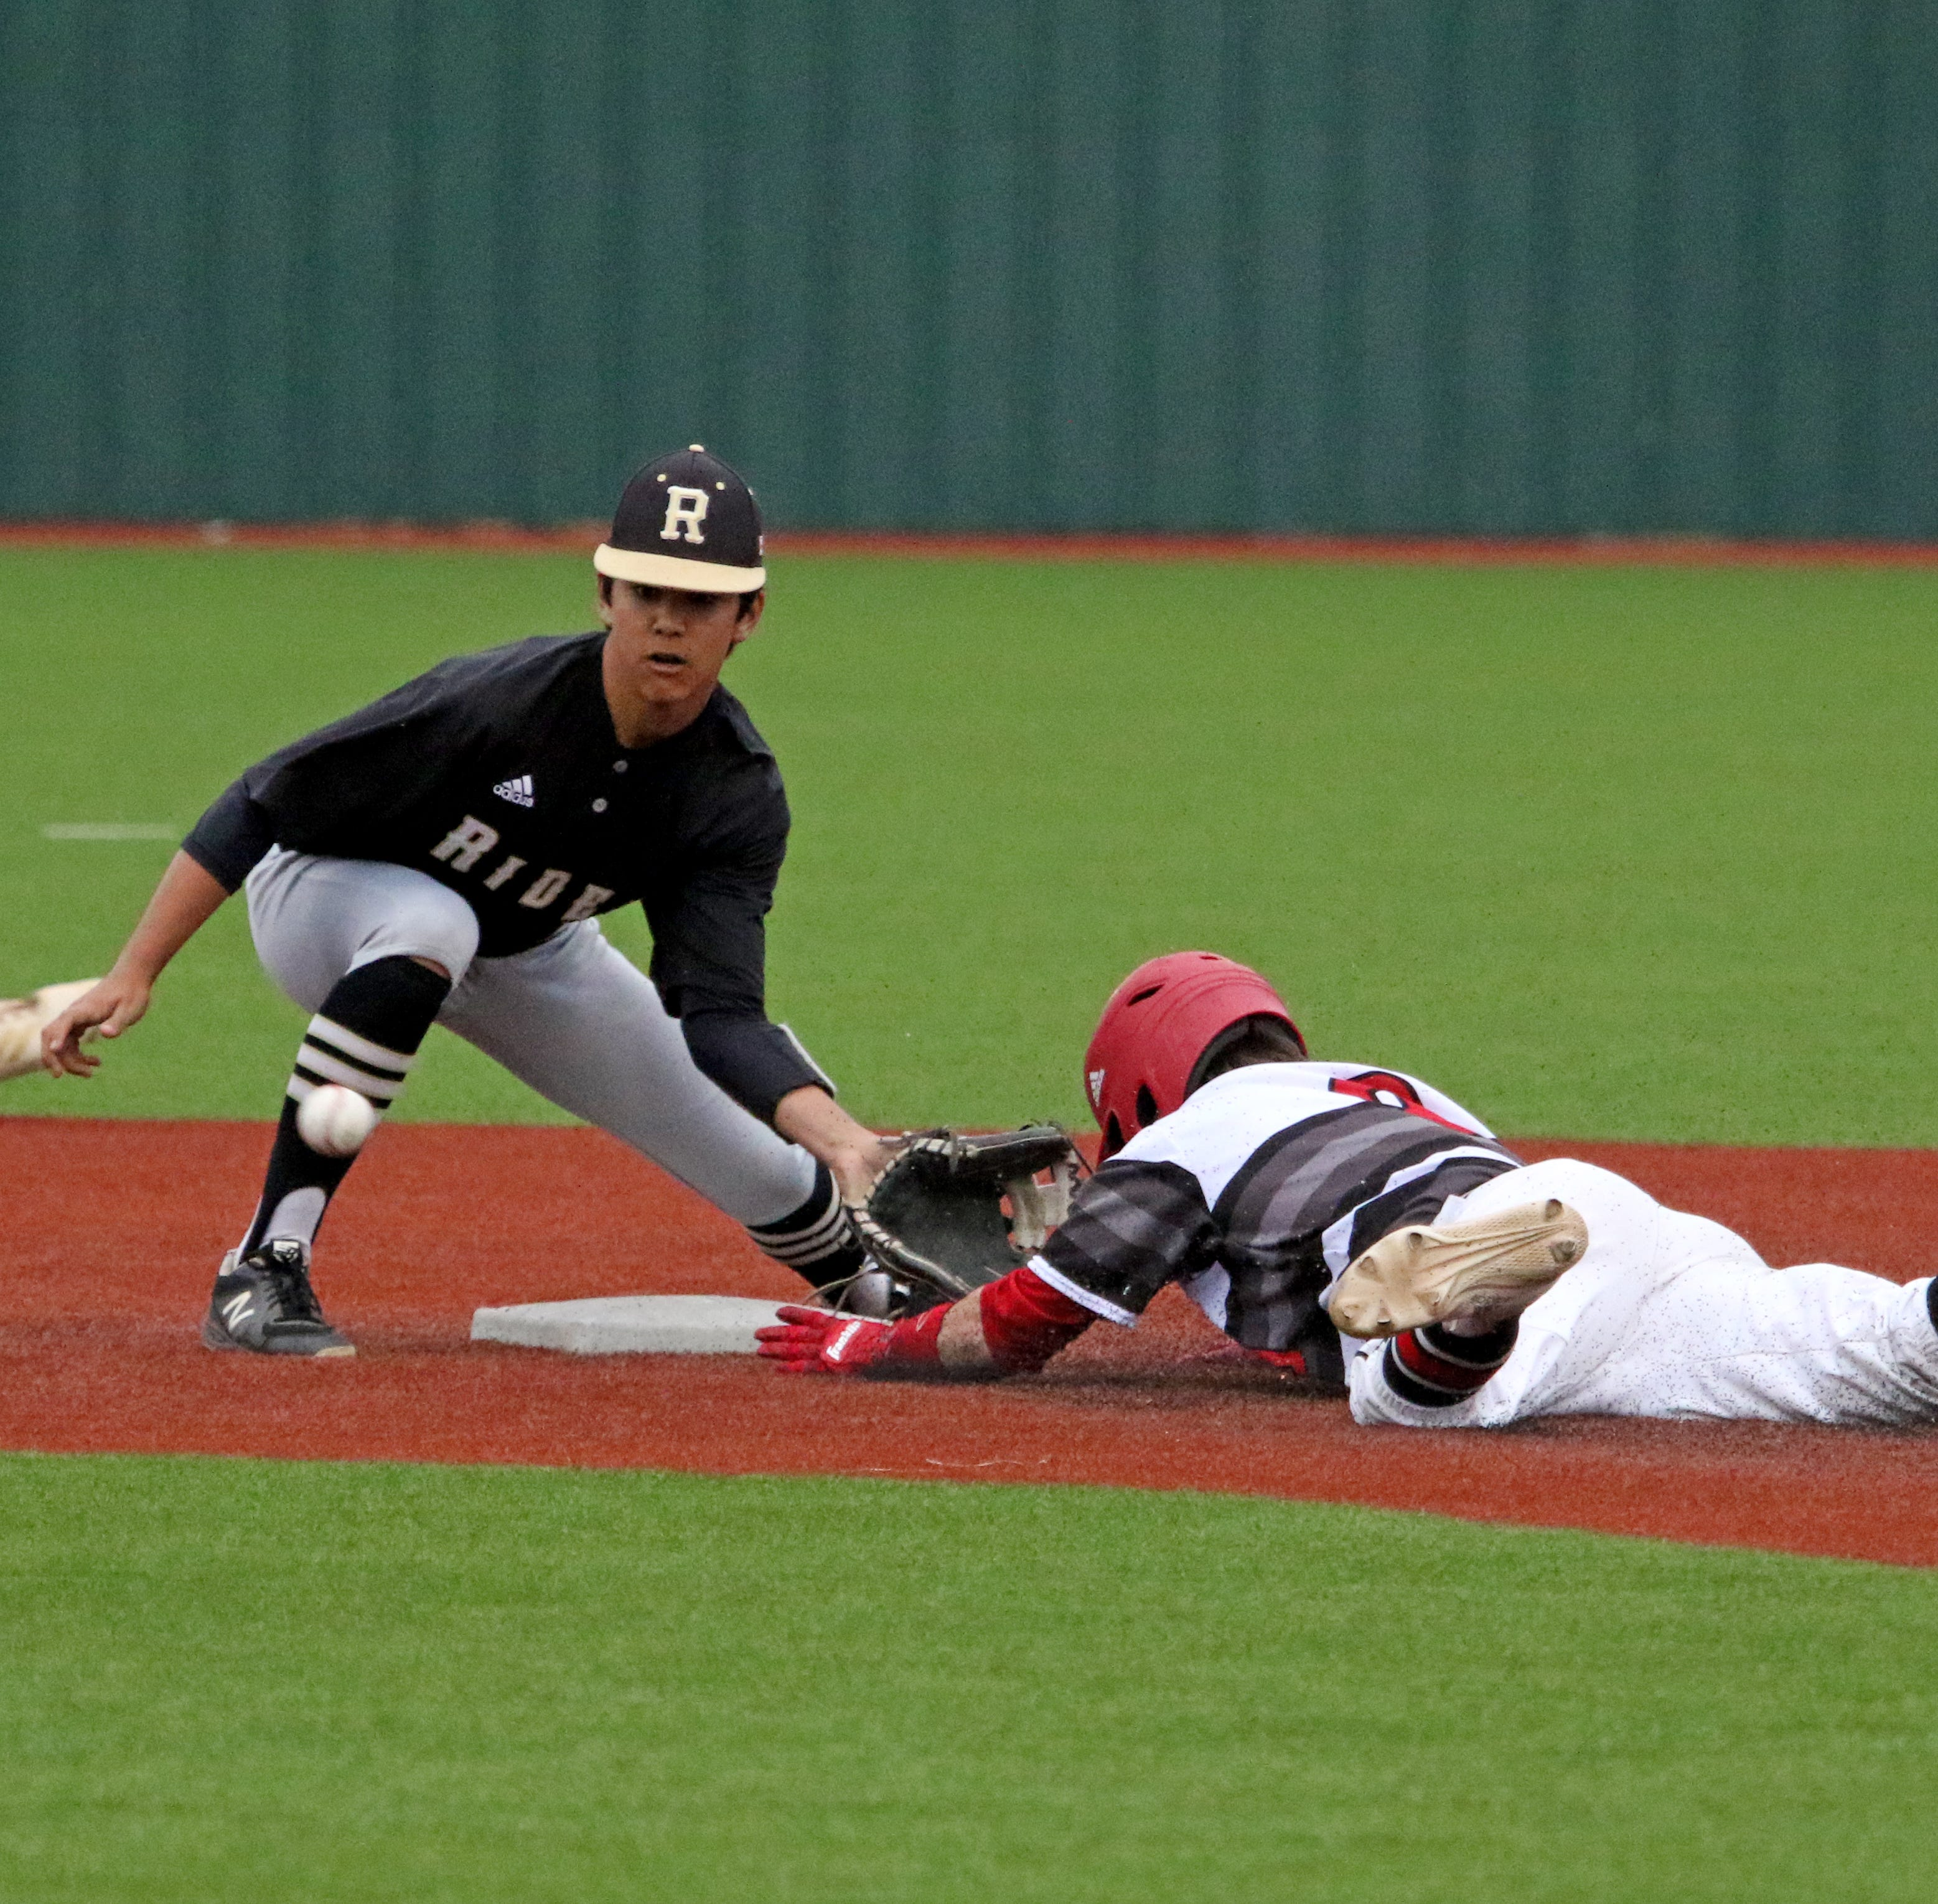 Baseball: Iowa Park takes outright 6-4A lead; Rider sweeps WFHS